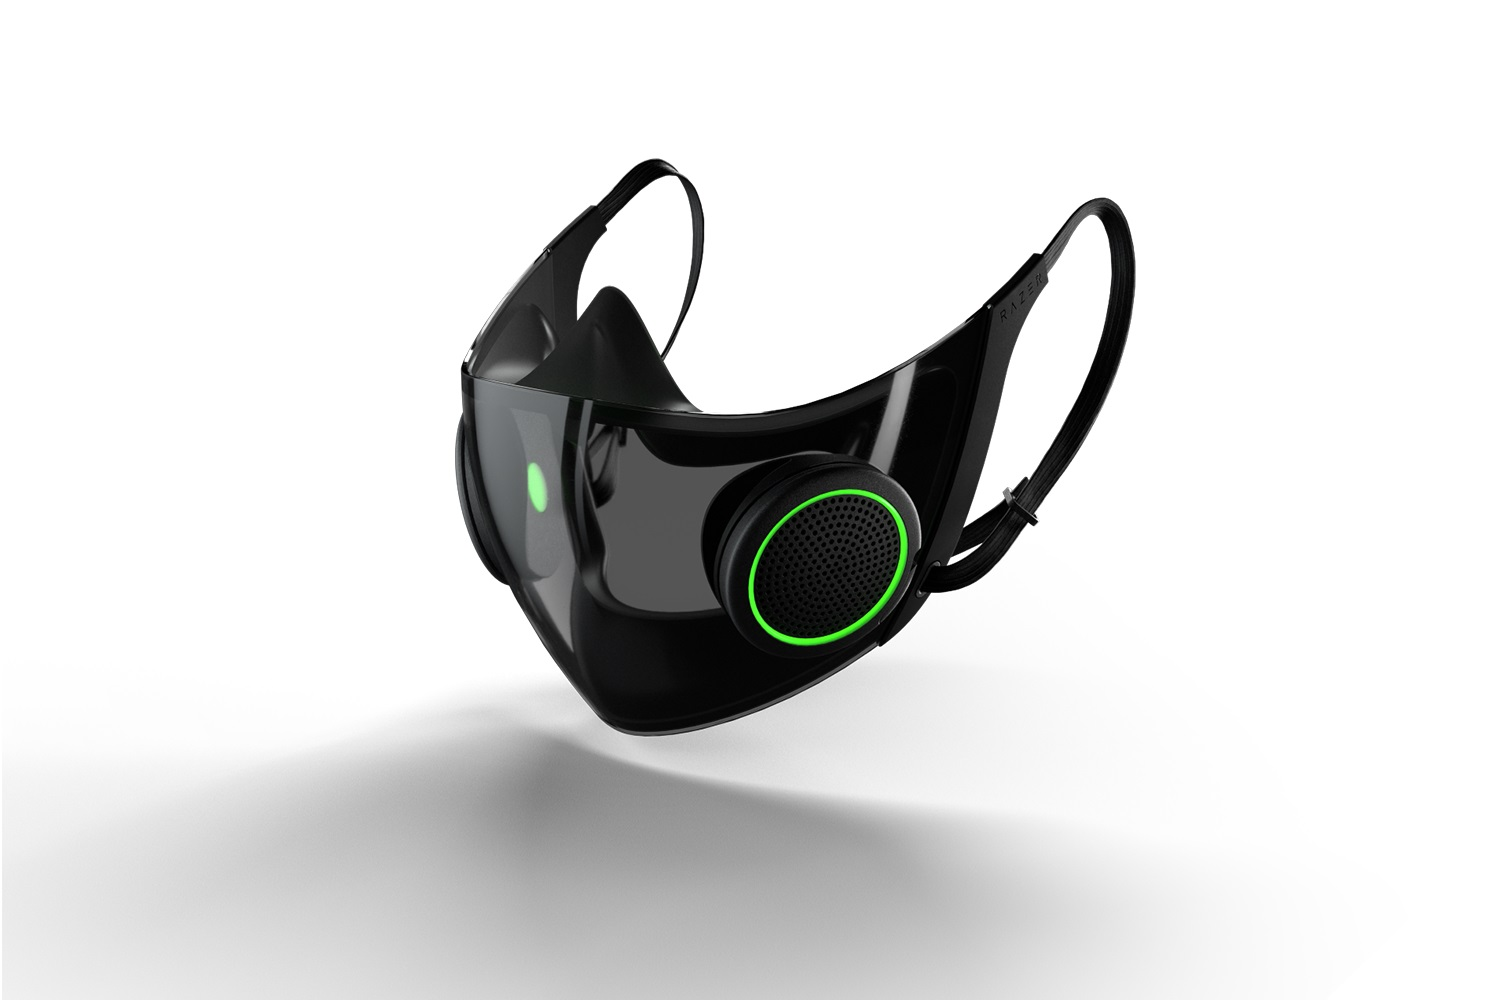 Razer: Mask prototypes with RGB lighting are becoming a reality